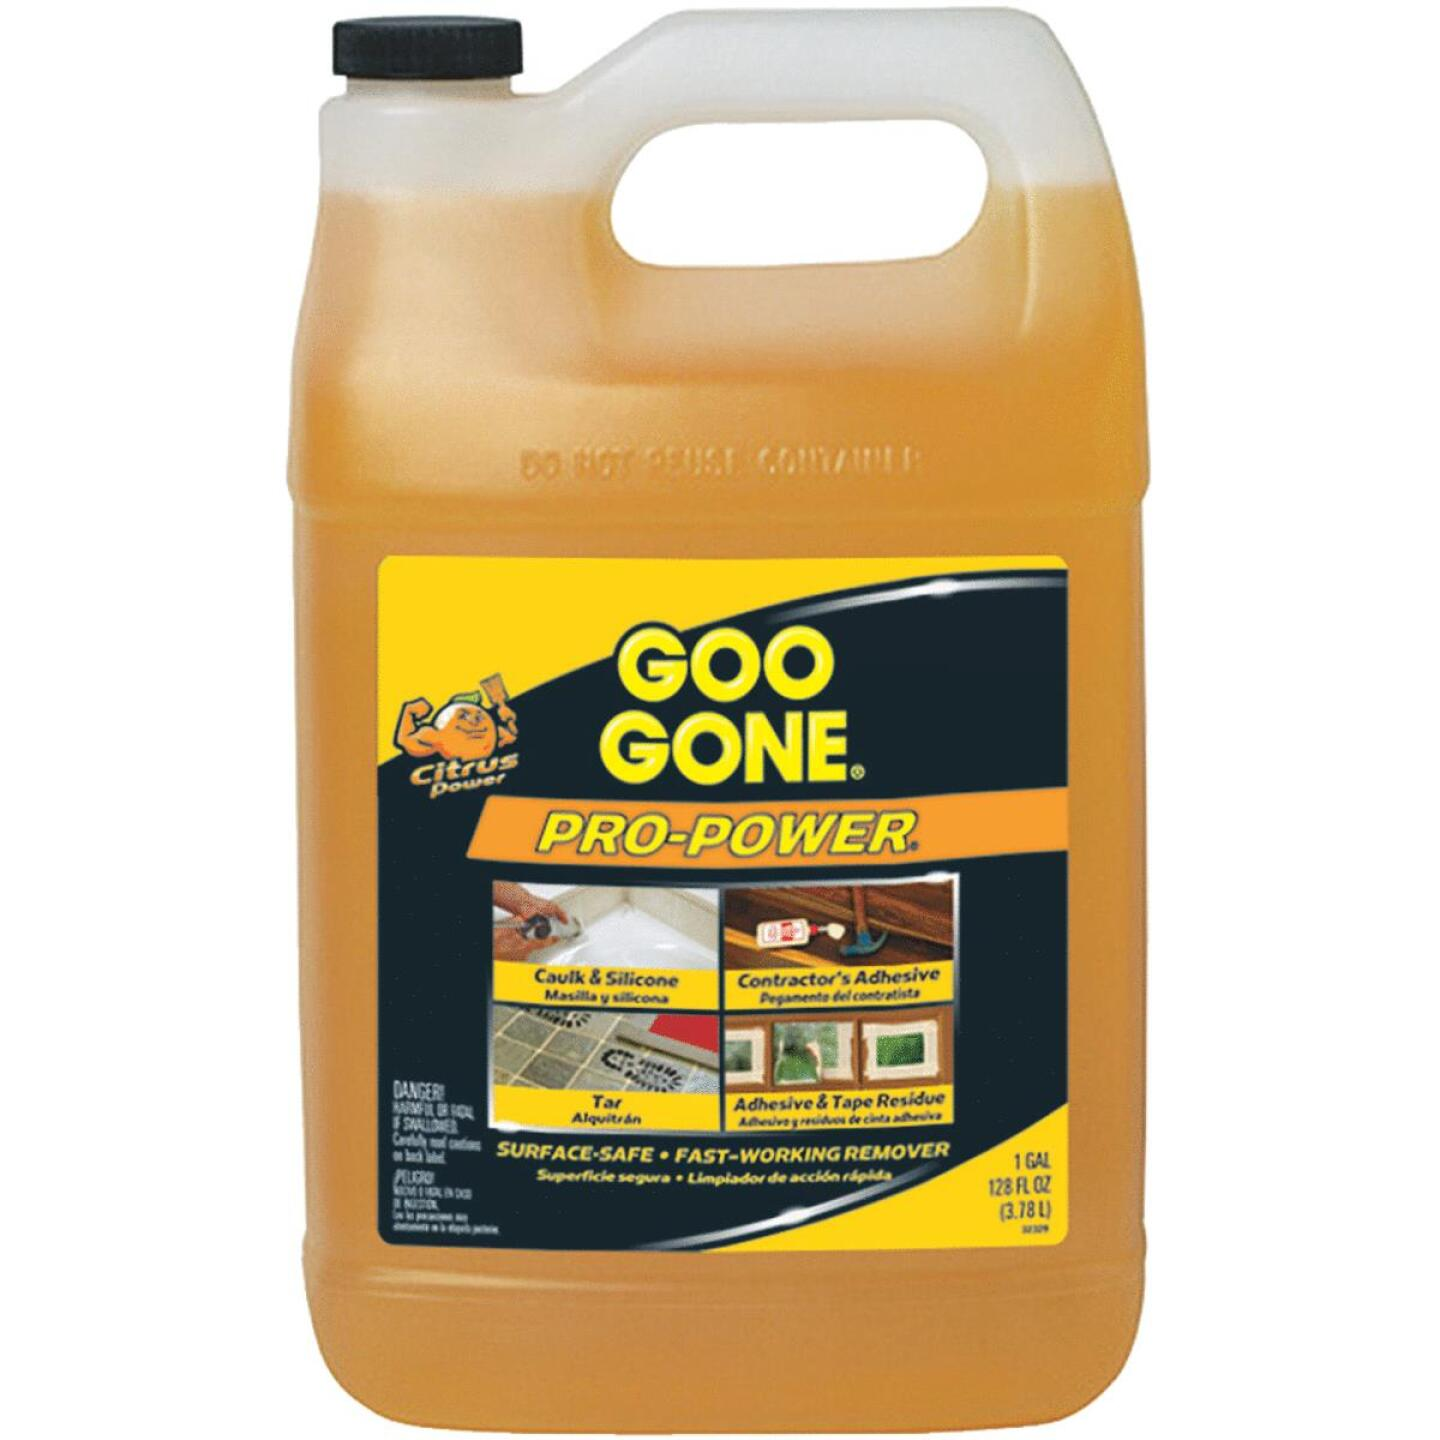 Goo Gone 1 Gal. Pro-Power Adhesive Remover Image 342